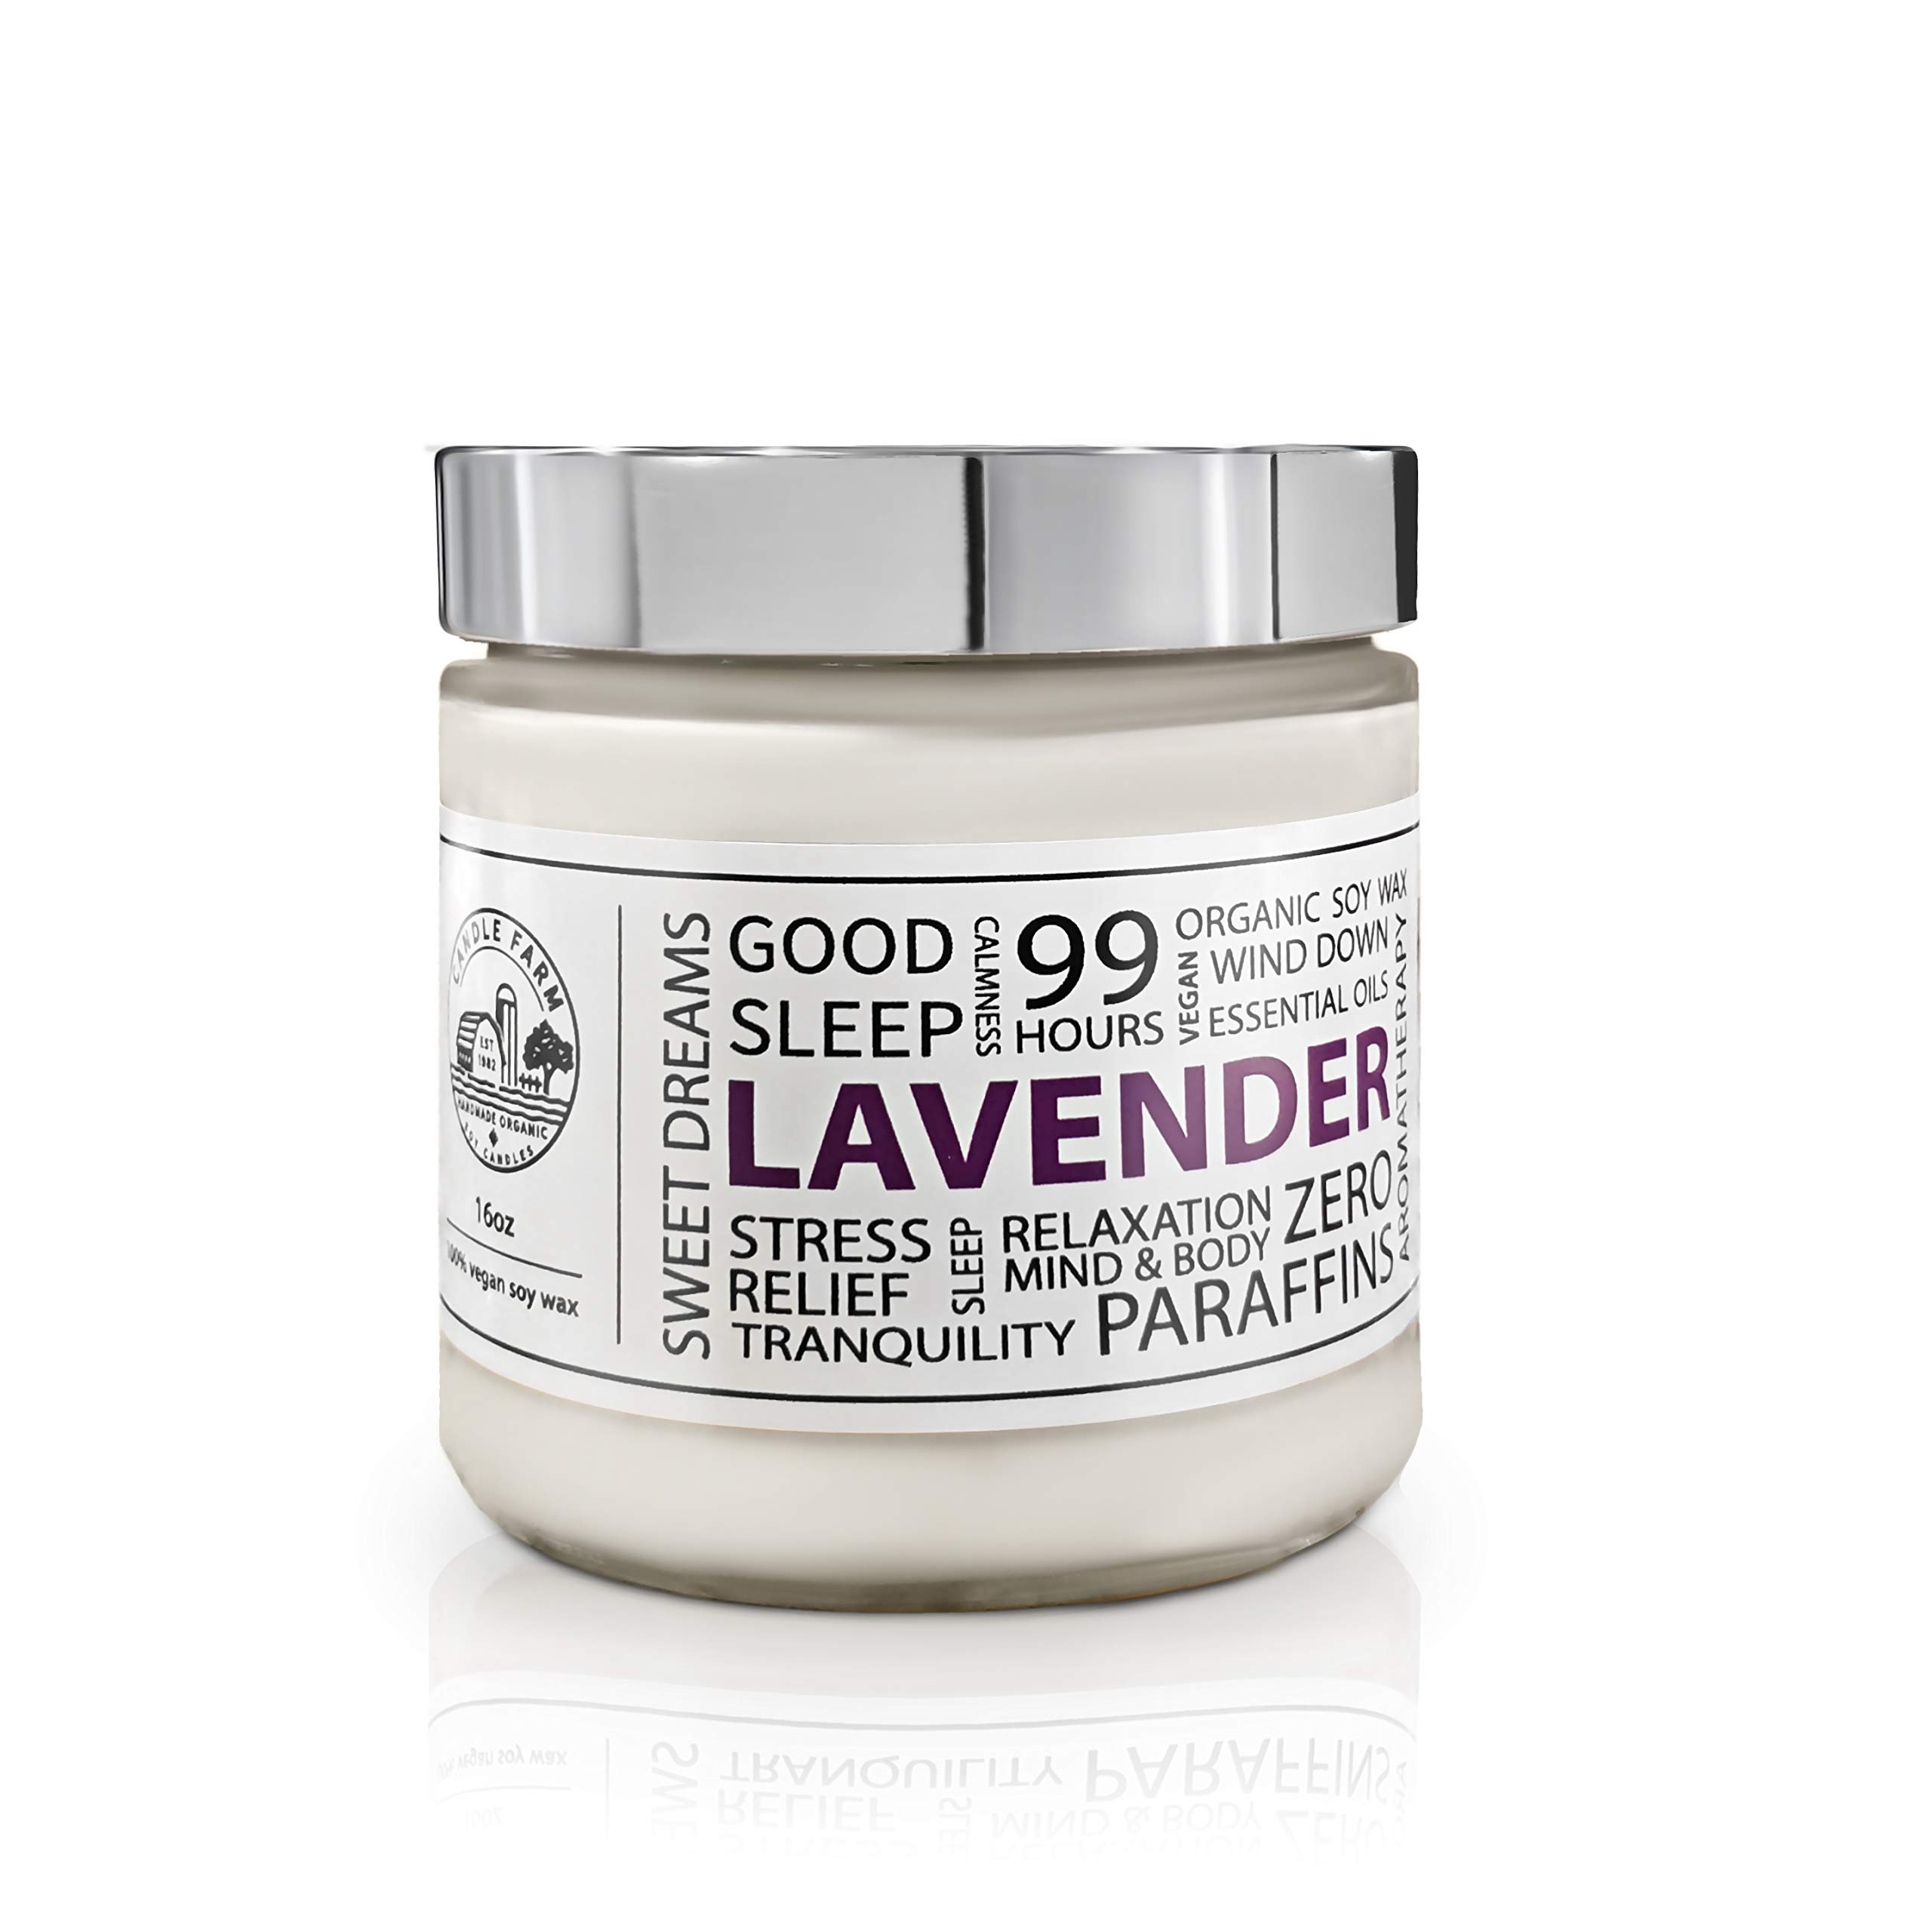 Lavender Scented Candle Made from Soy Wax Made with Natural Essential Oils - Aromatherapy by Candle Farm by Candle Farm